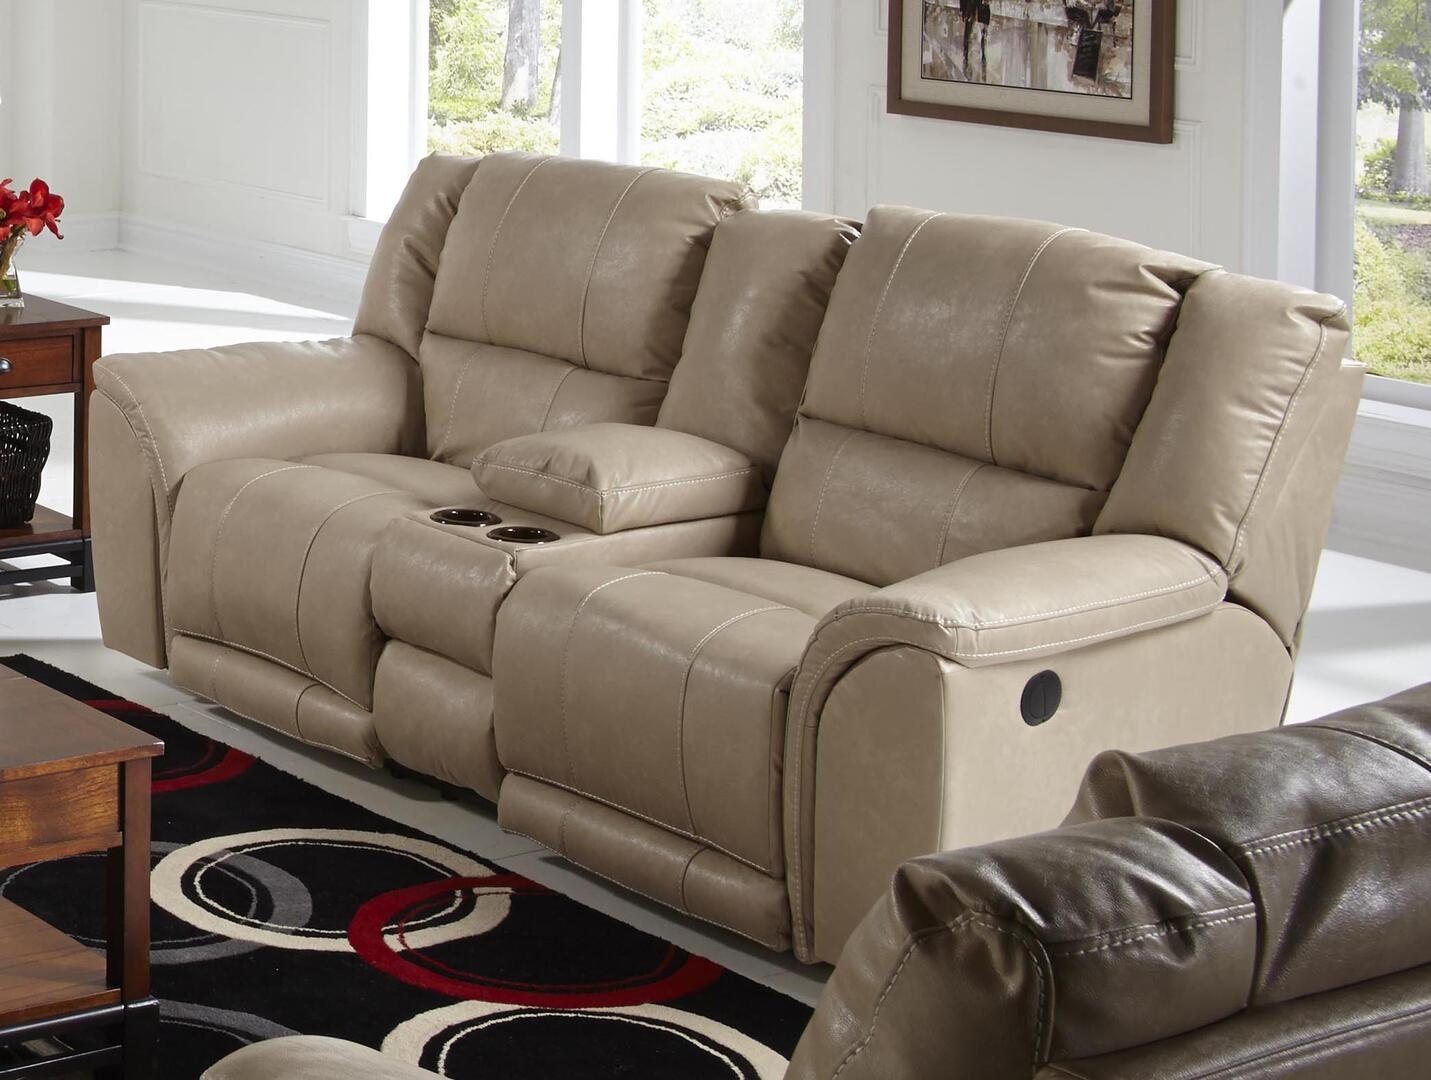 joynerreclining lay height flat joyner trim reclining loveseat threshold products miskelly width item catnapper console